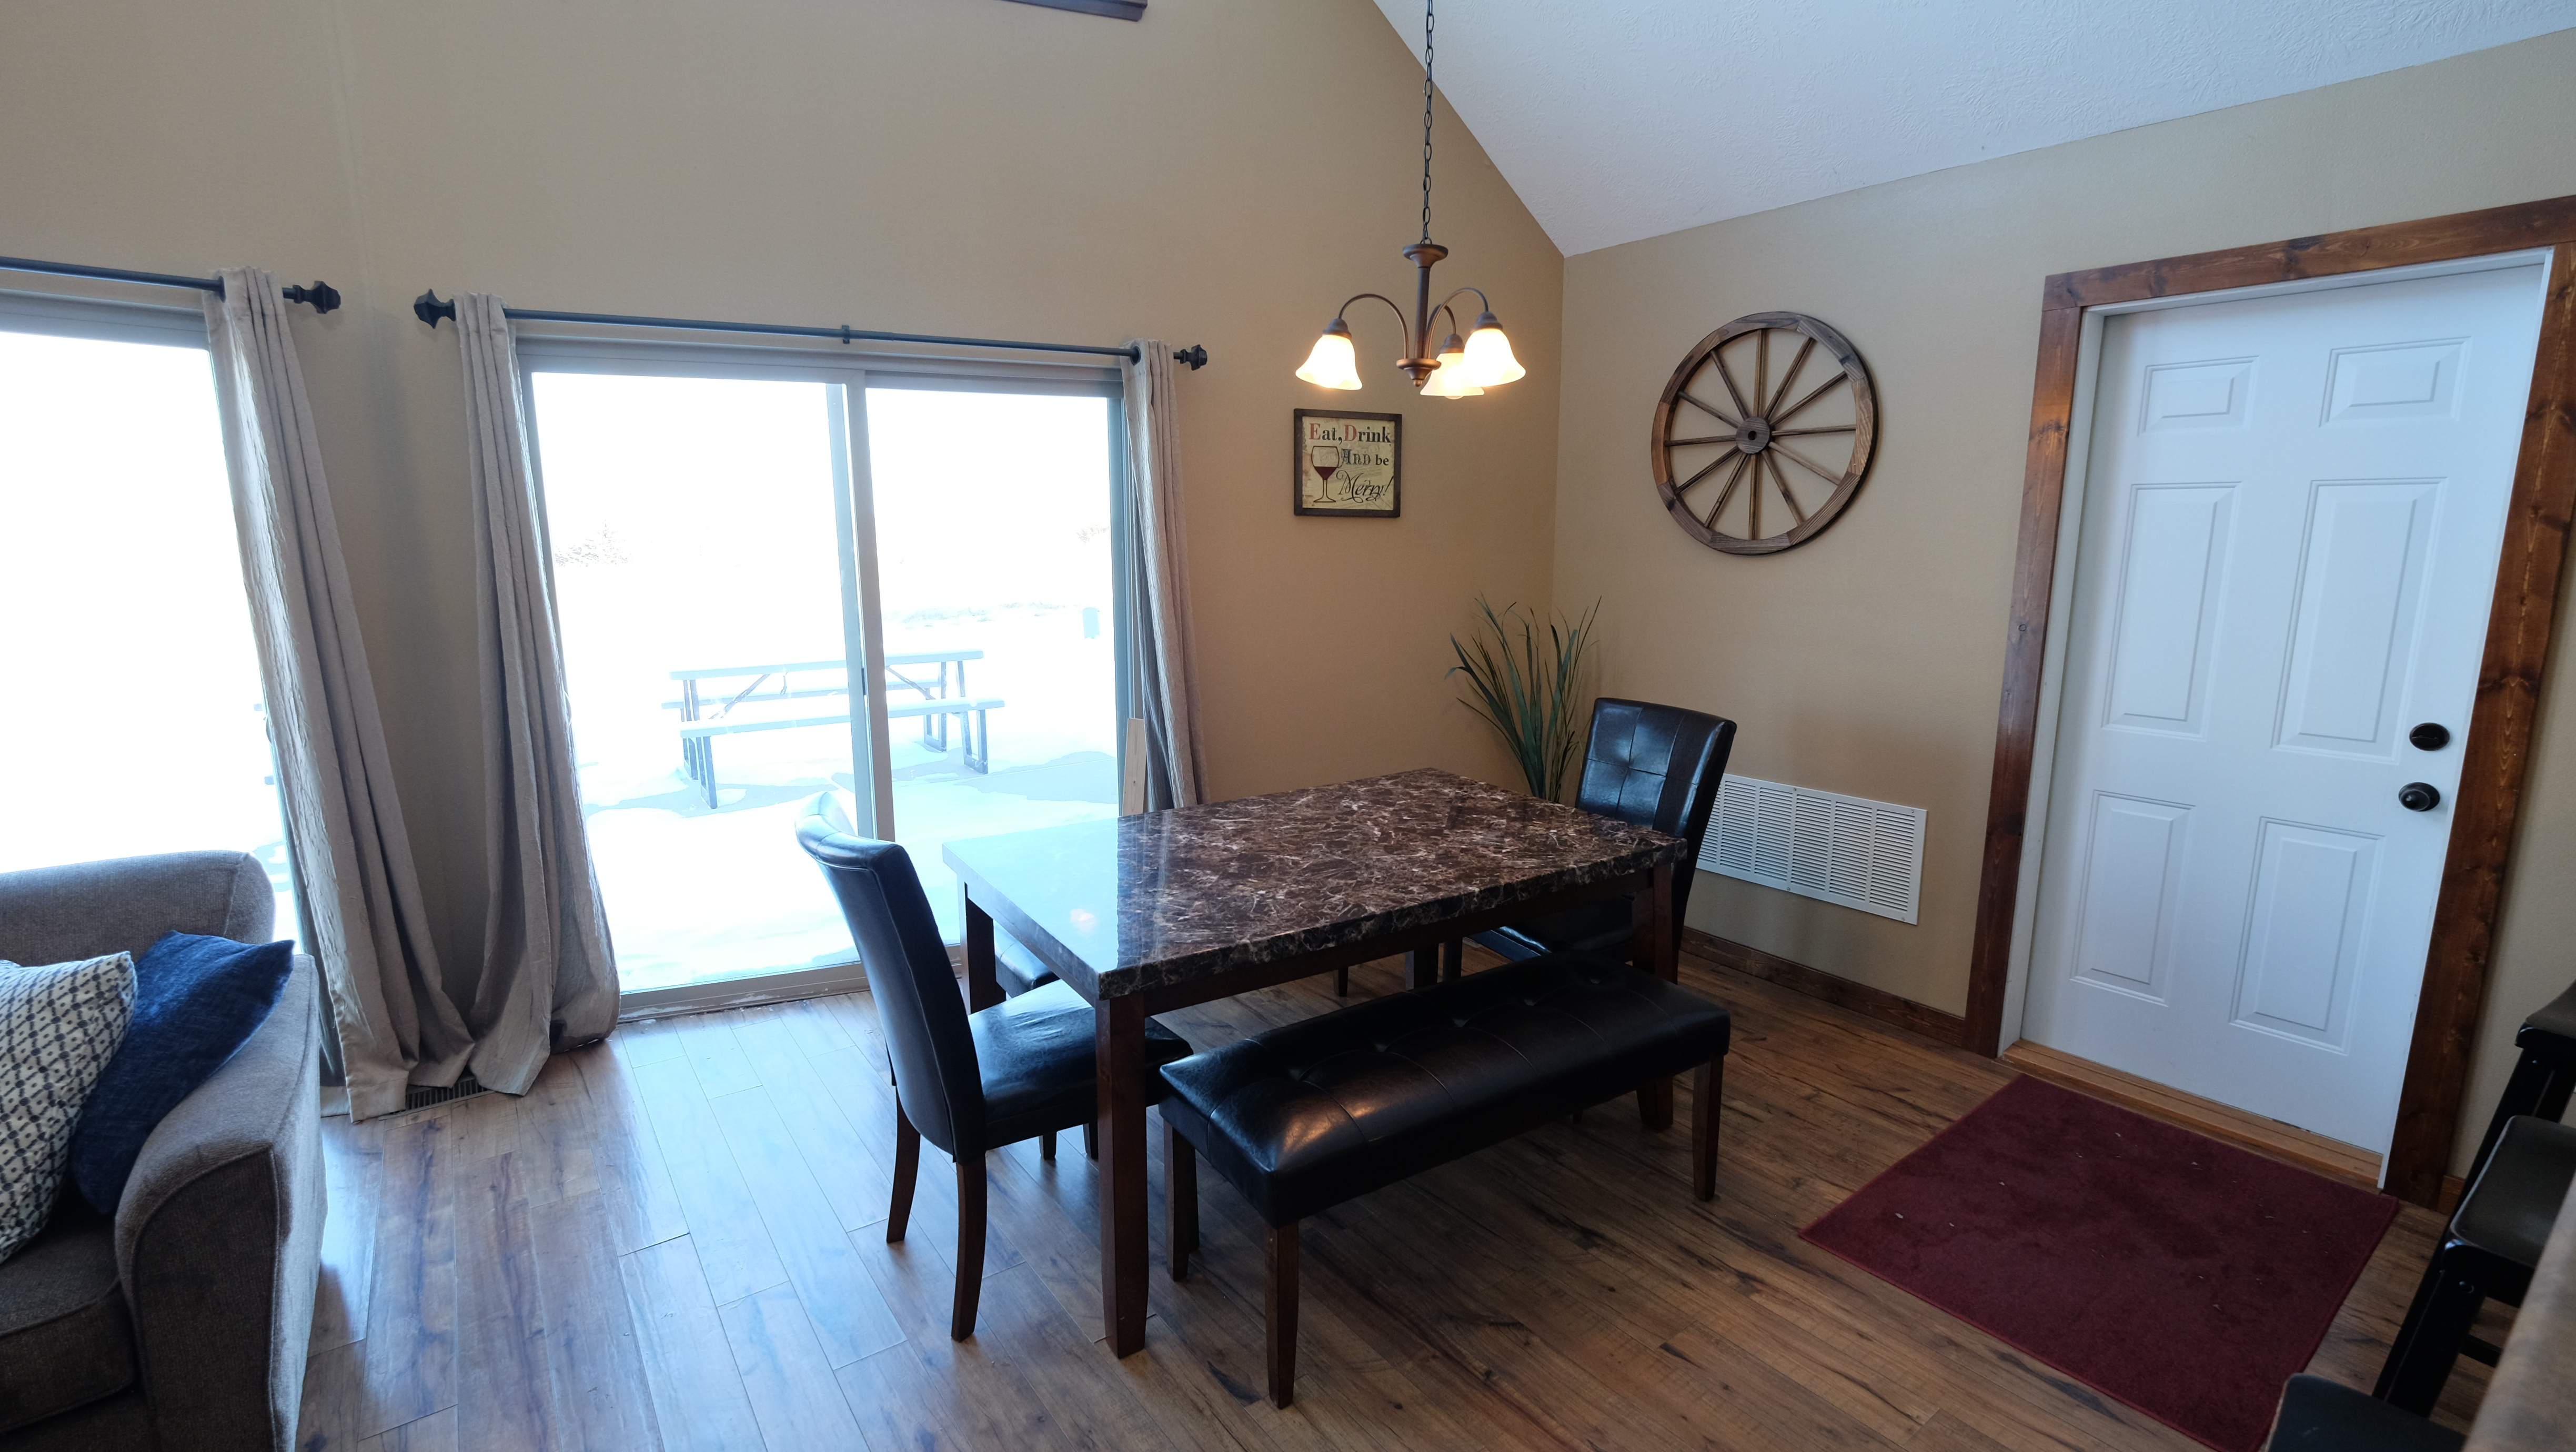 rentals the boat a bridges enjoy bay to relax cabins hoist park great also arnolds available properties okoboji cabin rent view condo at